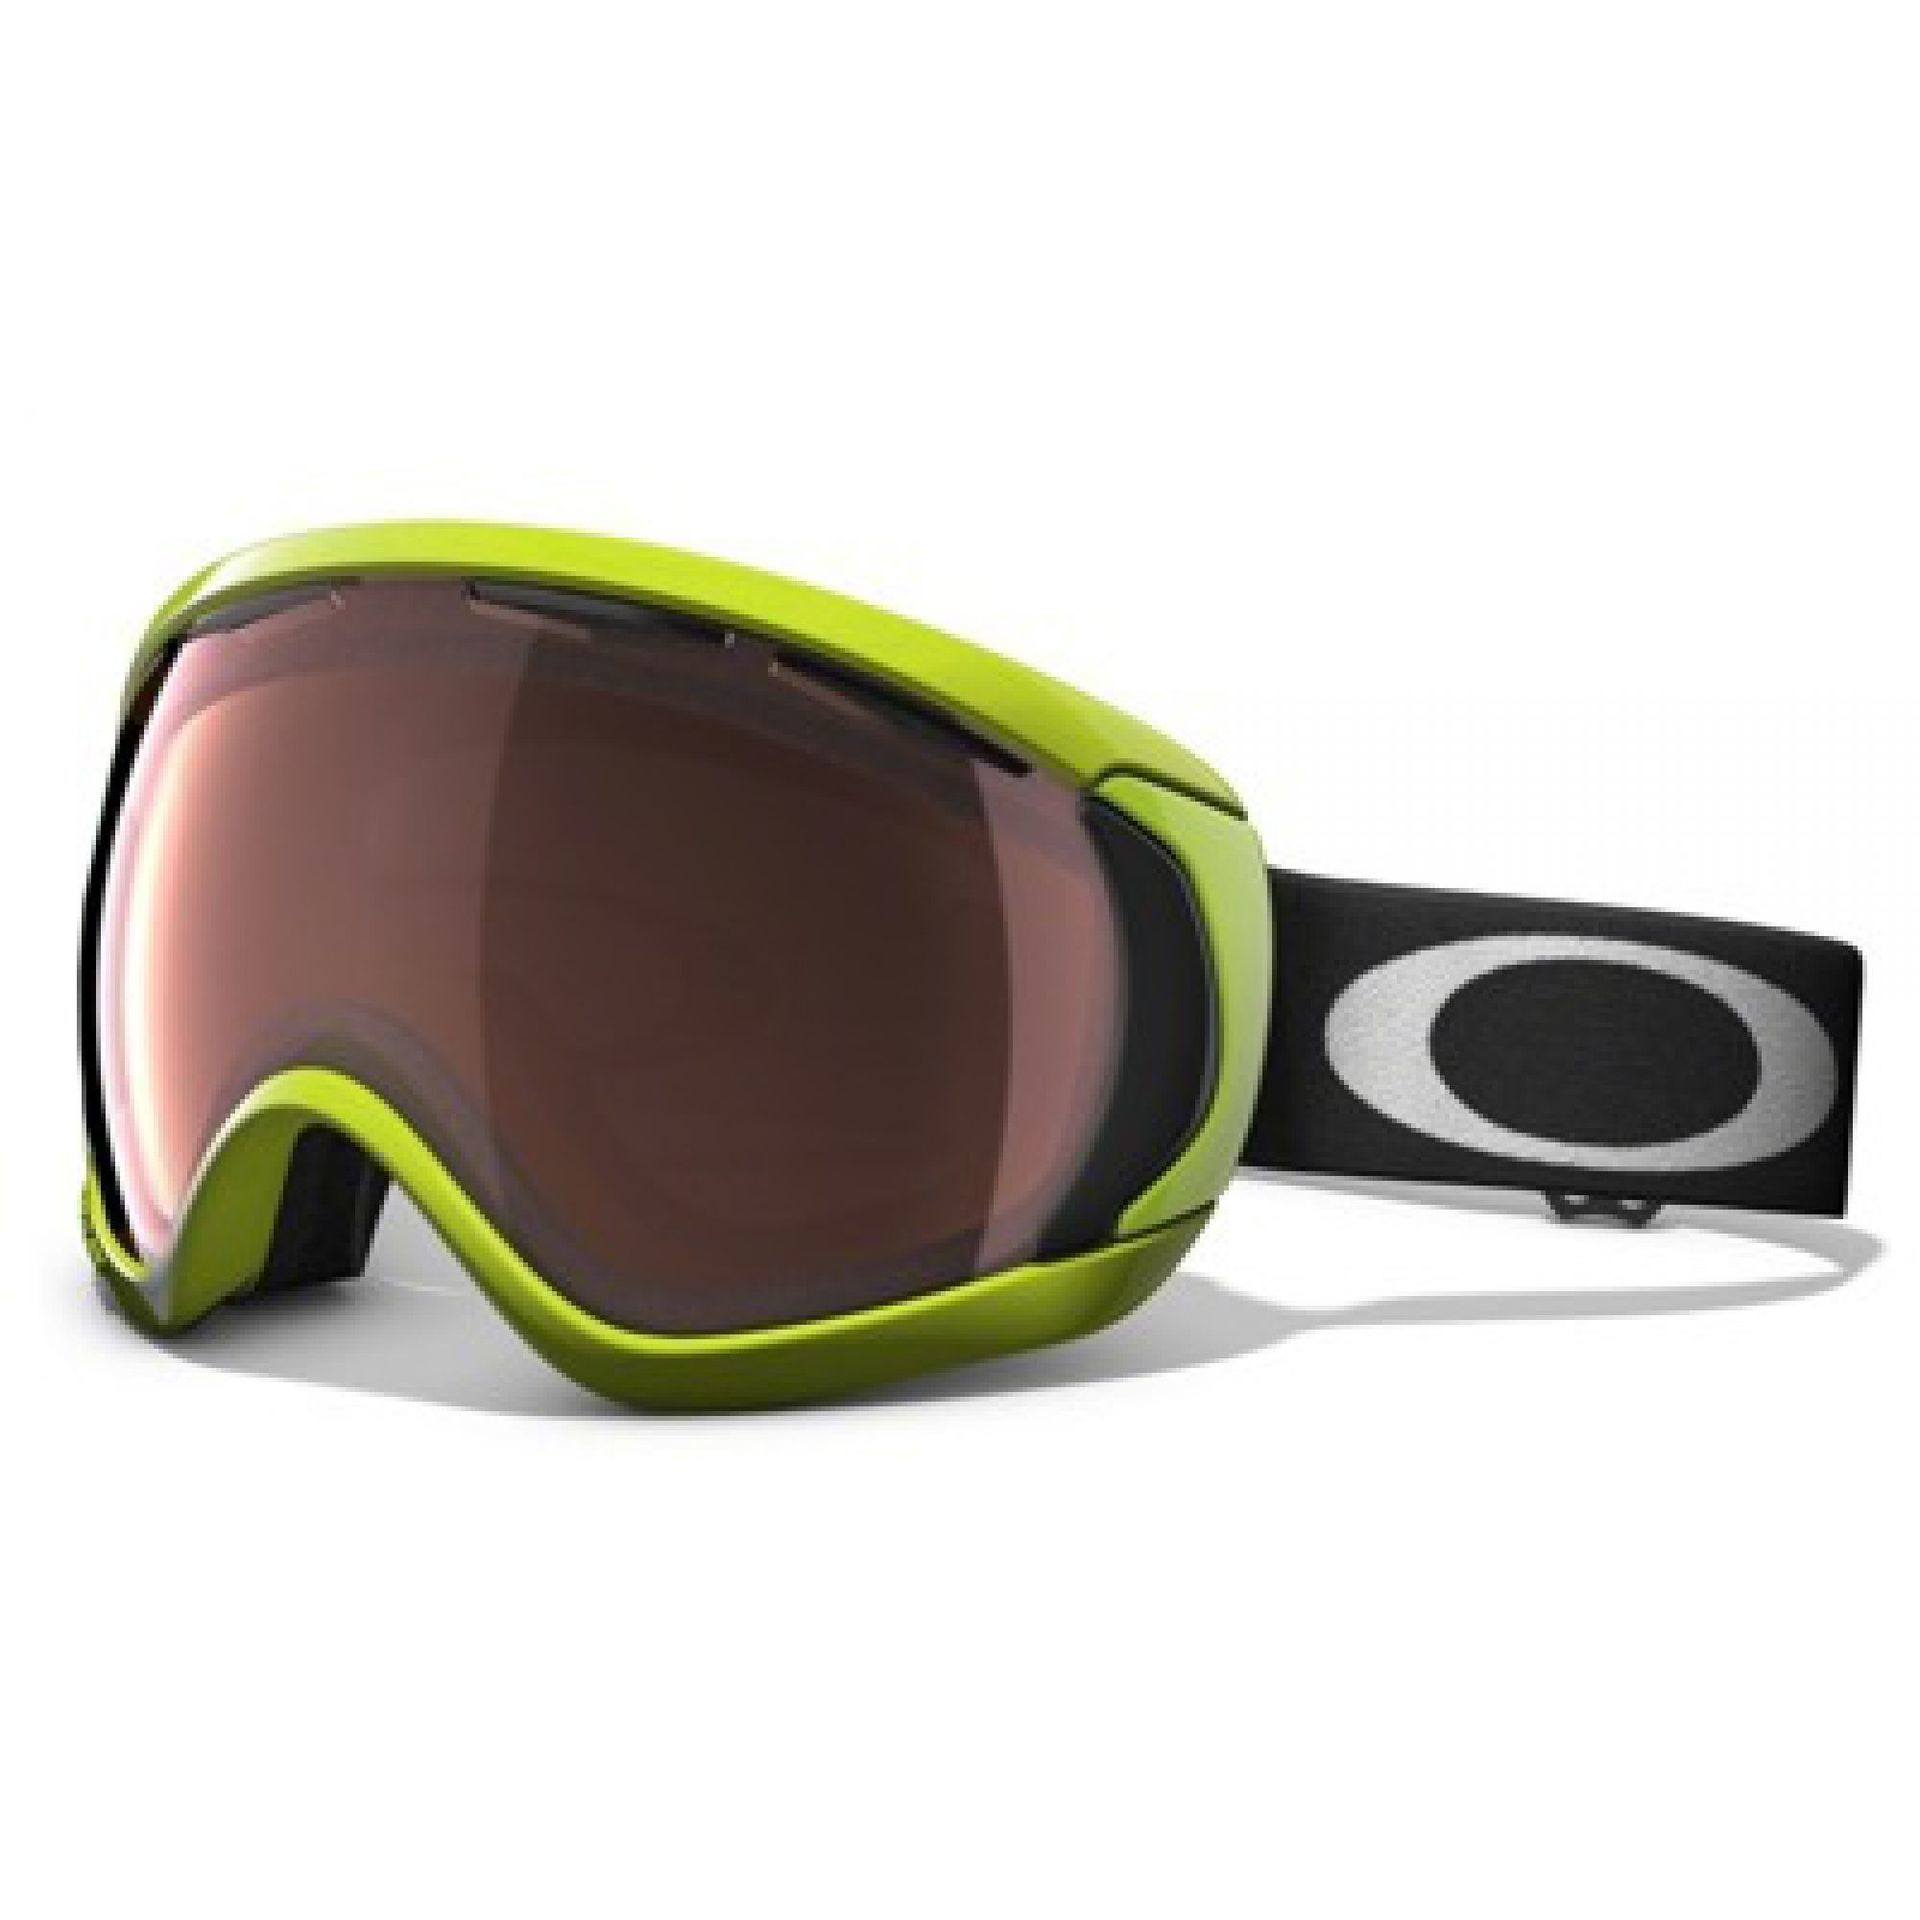 GOGLE OAKLEY CANOPY 80 GREEN COLLECTION|PRIZM BLACK IRIDIUM 1